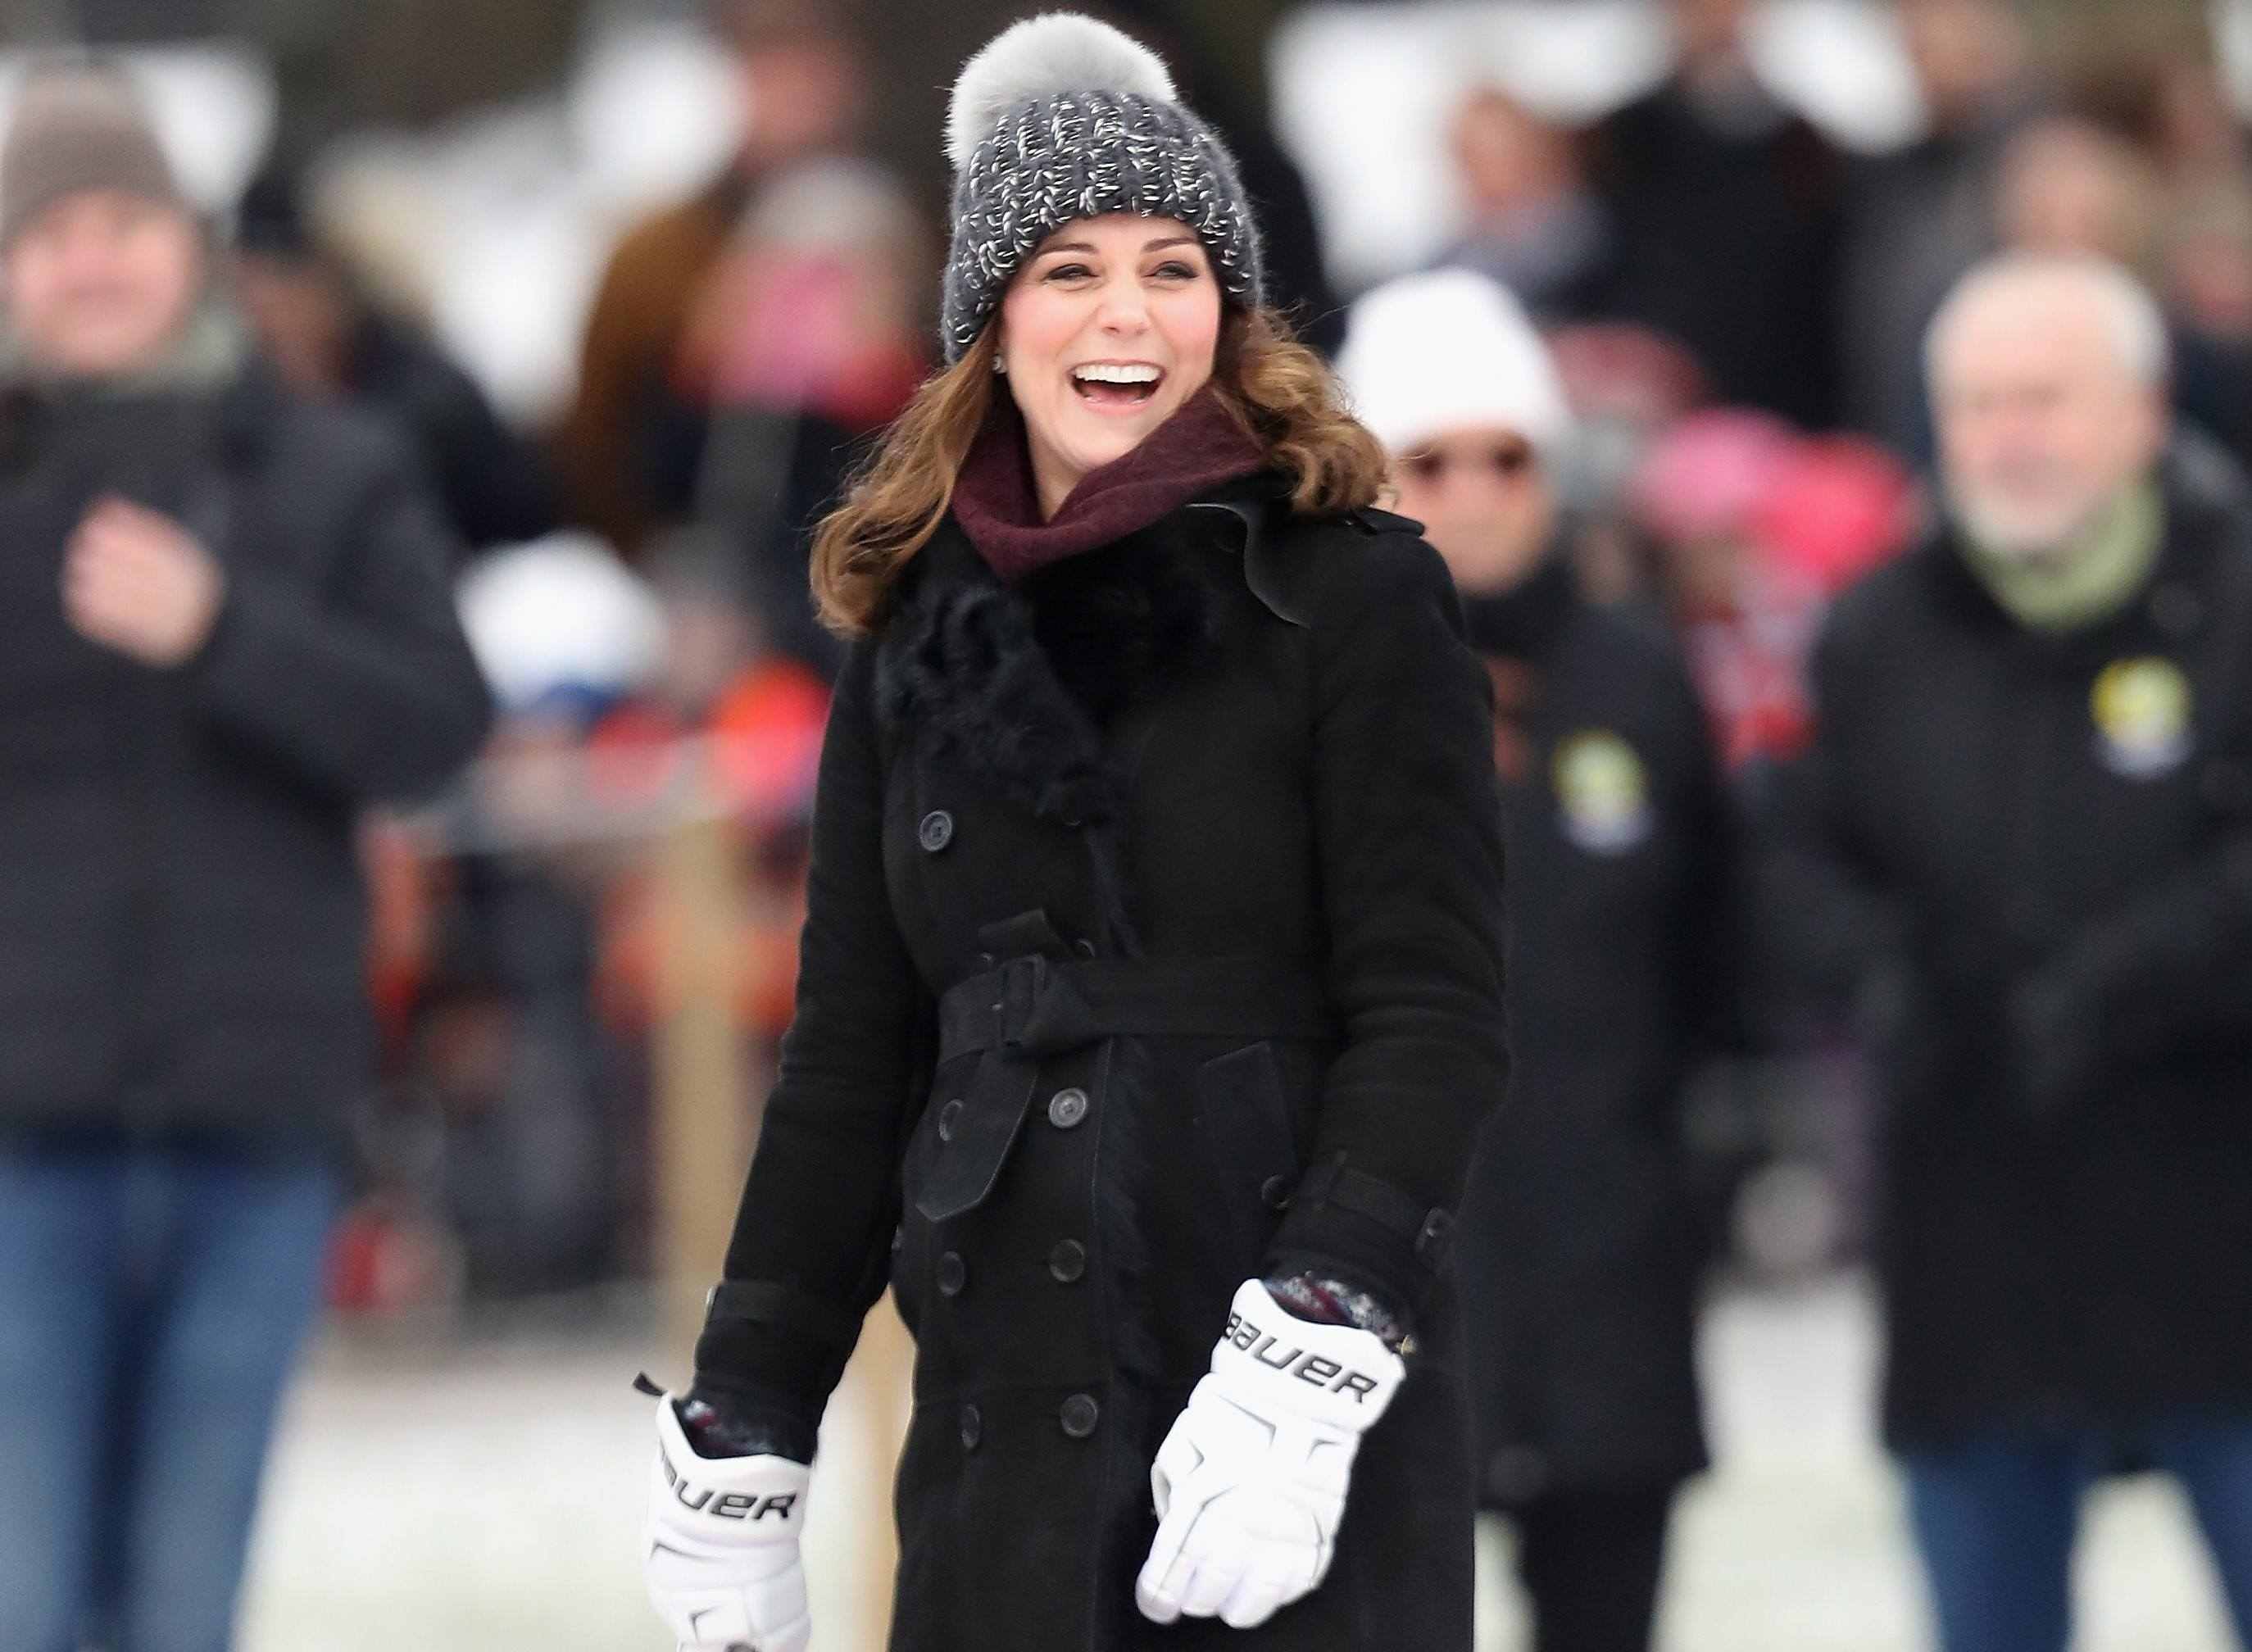 Kate Middleton in Sweden